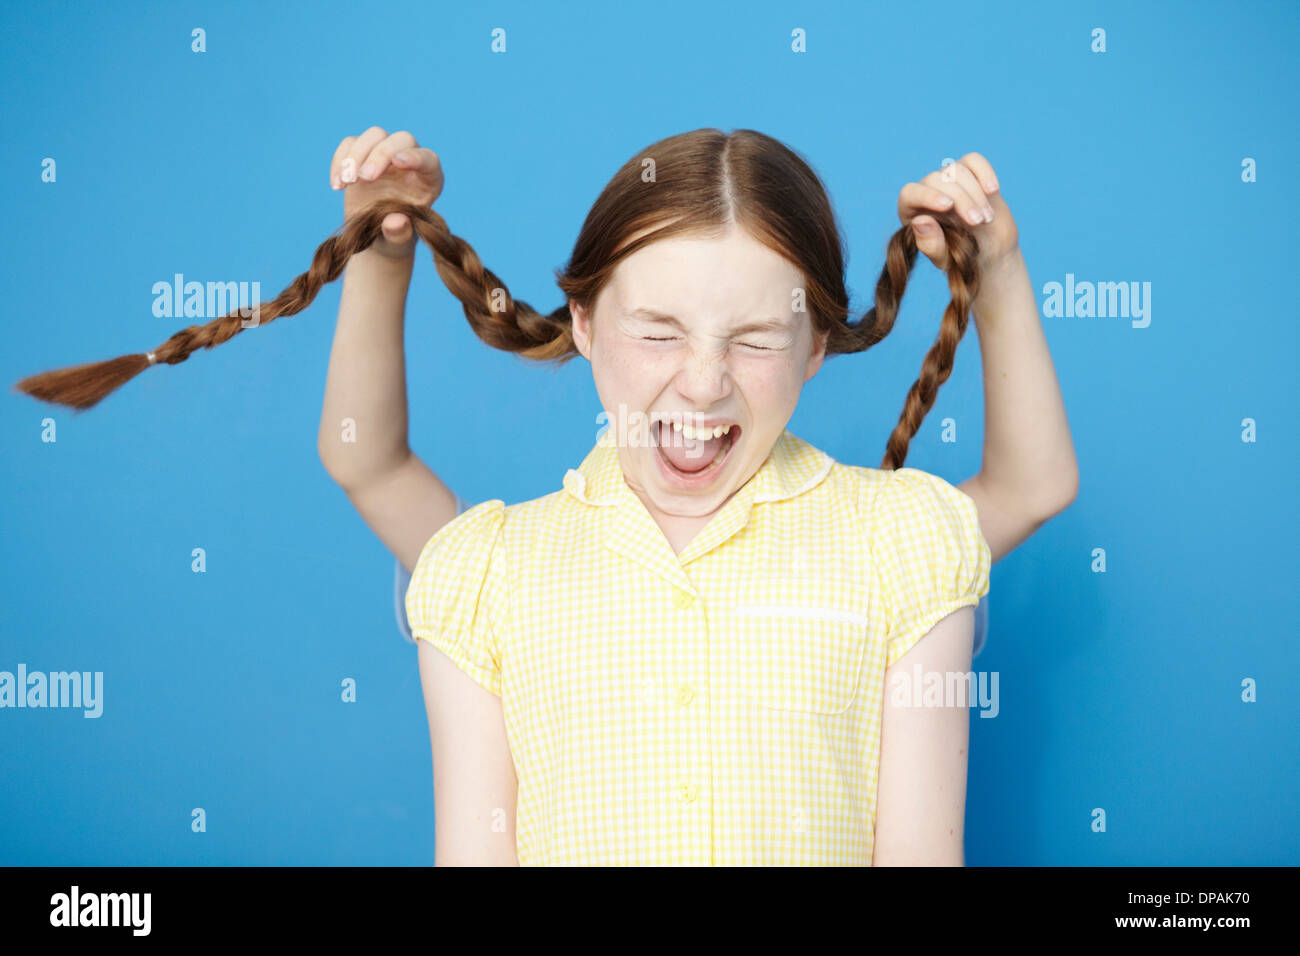 Girl wearing yellow school dress, boy behind pulling her plaits - Stock Image